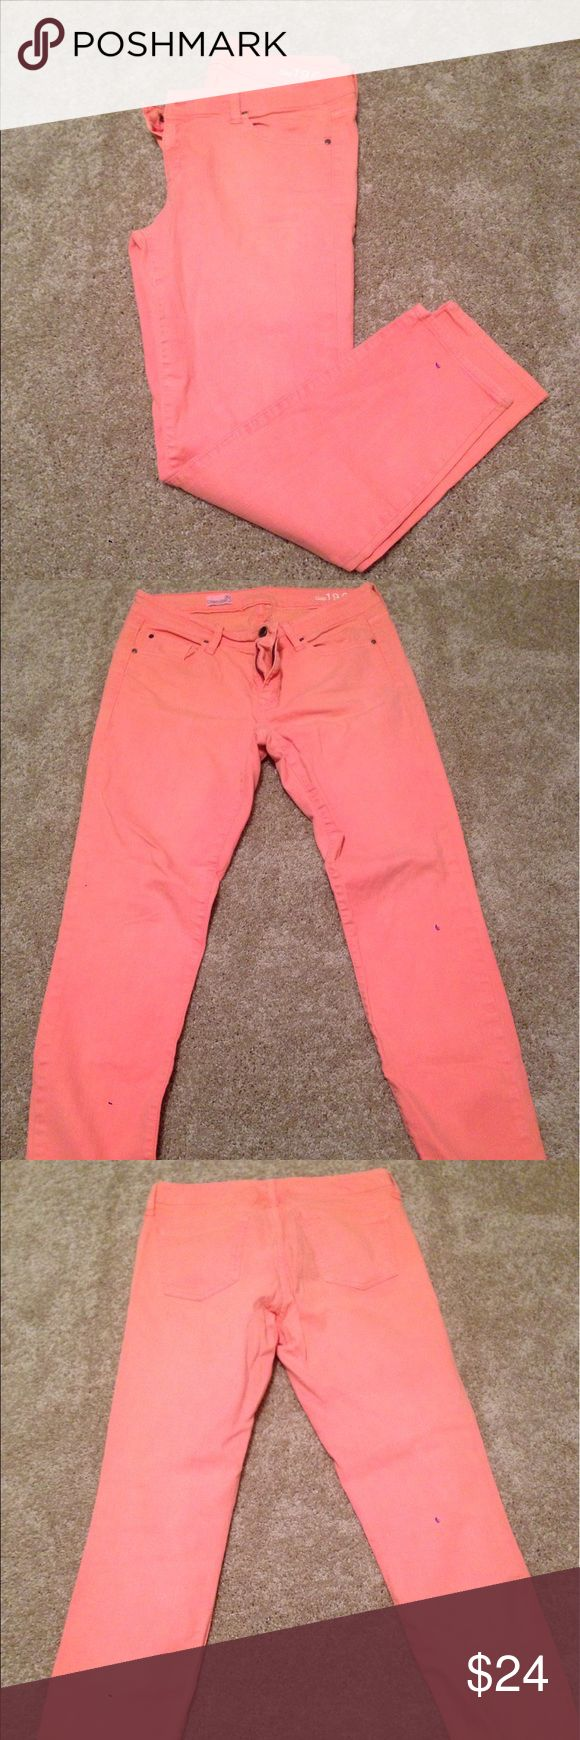 GAP Peach Skinny Jeans GAP peach/light orange skinny jeans! Great condition, perfect for spring, summer, pool parties, cruises, spring breaks, and beaches!! Offers welcome! GAP Pants Skinny